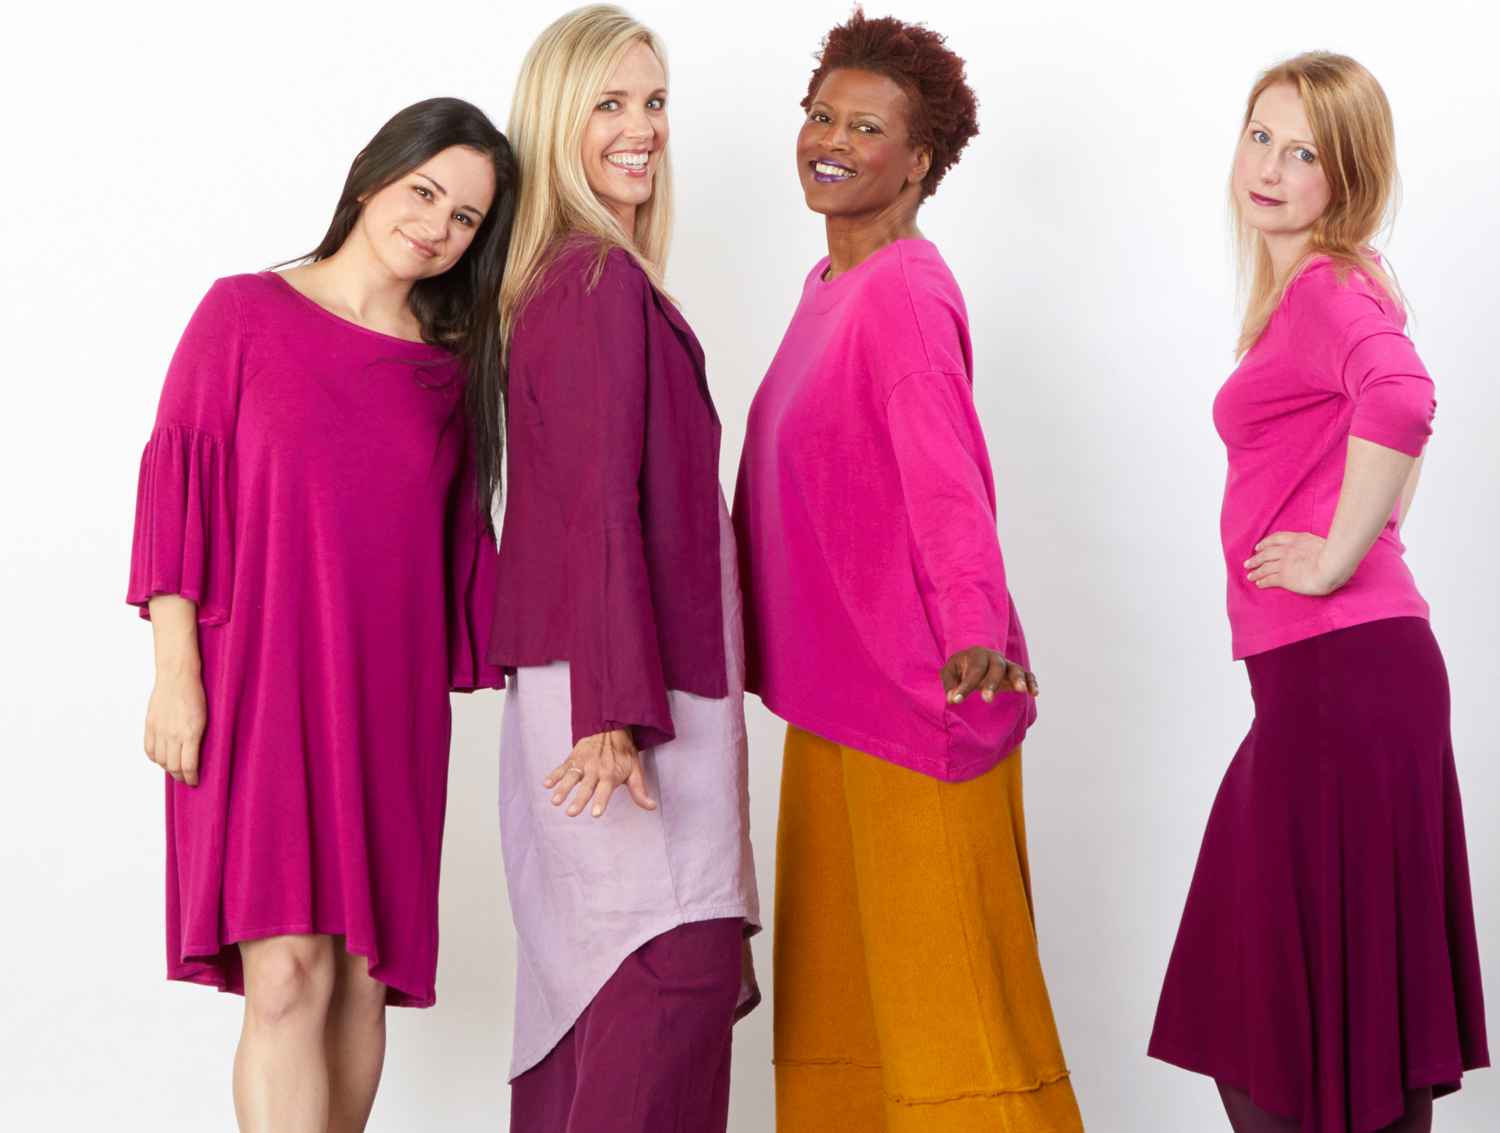 Rivera Tunic in Hyacinth Grey Terry, Eleni Jacket in Kir, S/S Euna Tunic in Rosemallow Light Linen, Evie Shirt in Hyacinth Bamboo Terry, 3/4 Sleeve Shell in Hyacinth Organic Bamboo Cotton, Crop Full Pant in Senape Terry